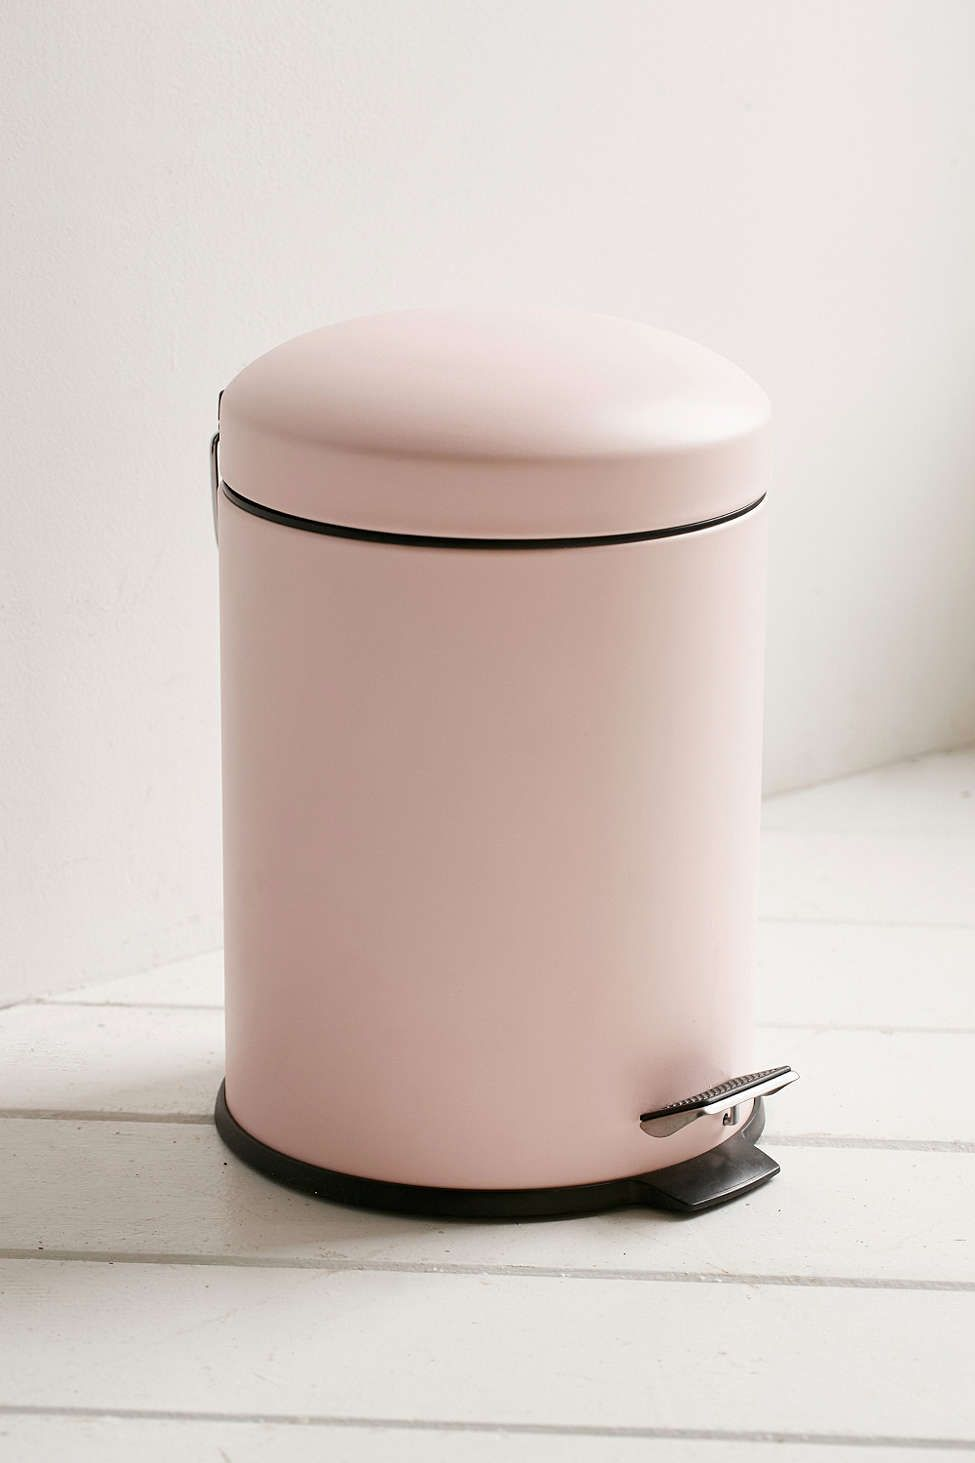 Mini Trash Can Pink Home Decor Living Room Decor Modern Bathroom Decoration Items